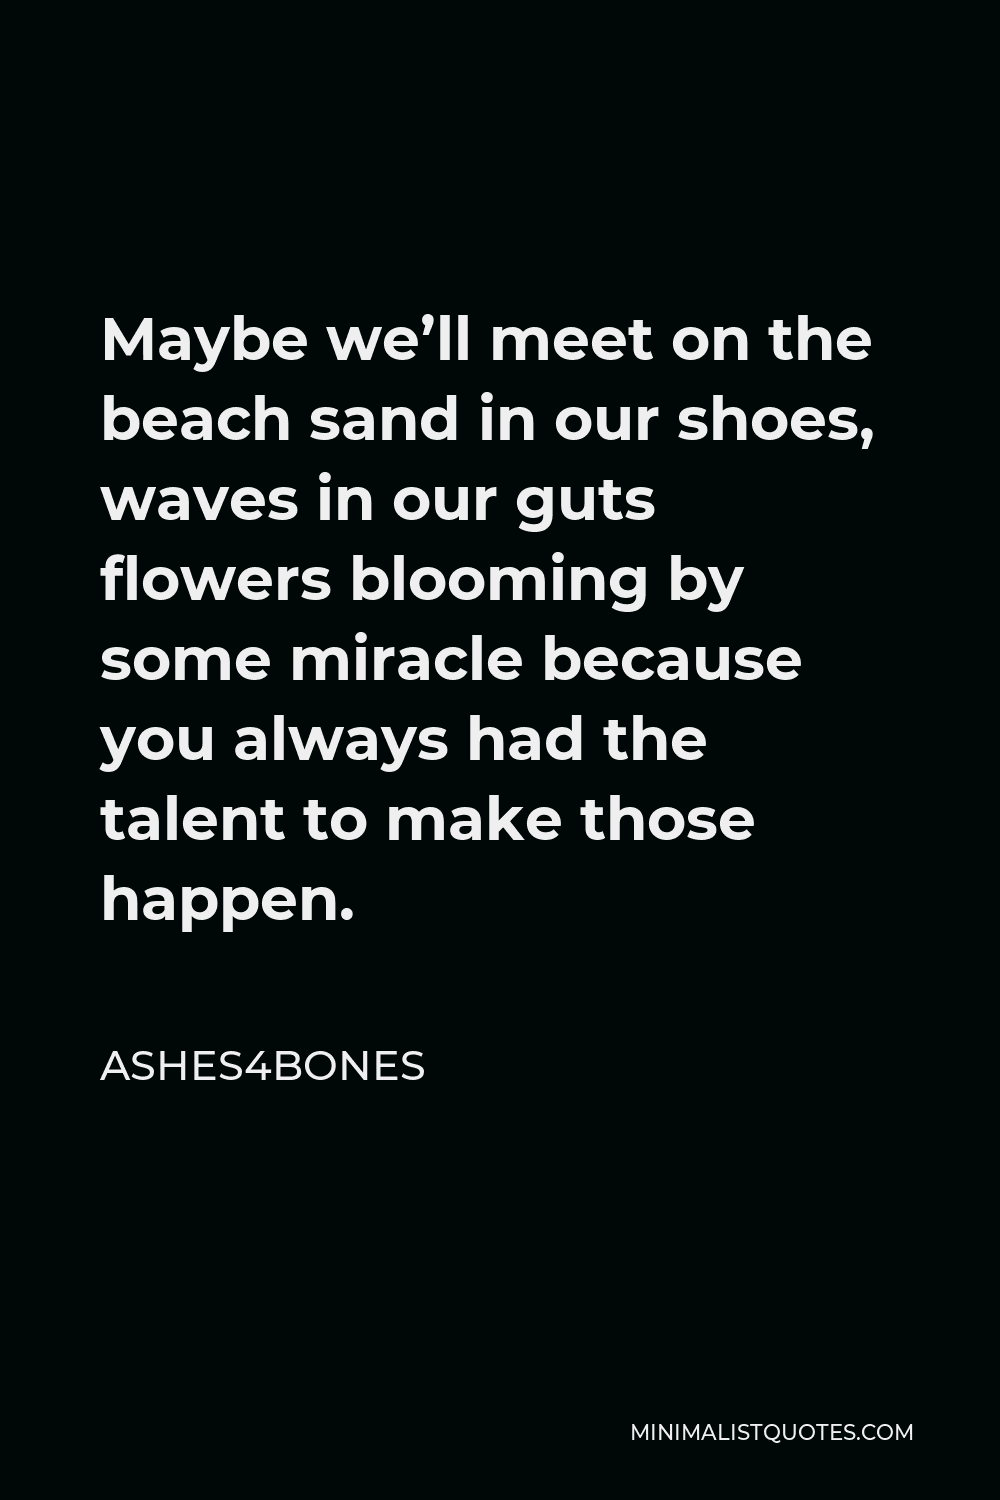 Ashes4bones Quote - Maybe we'll meet on the beach sand in our shoes, waves in our guts flowers blooming by some miracle because you always had the talent to make those happen.